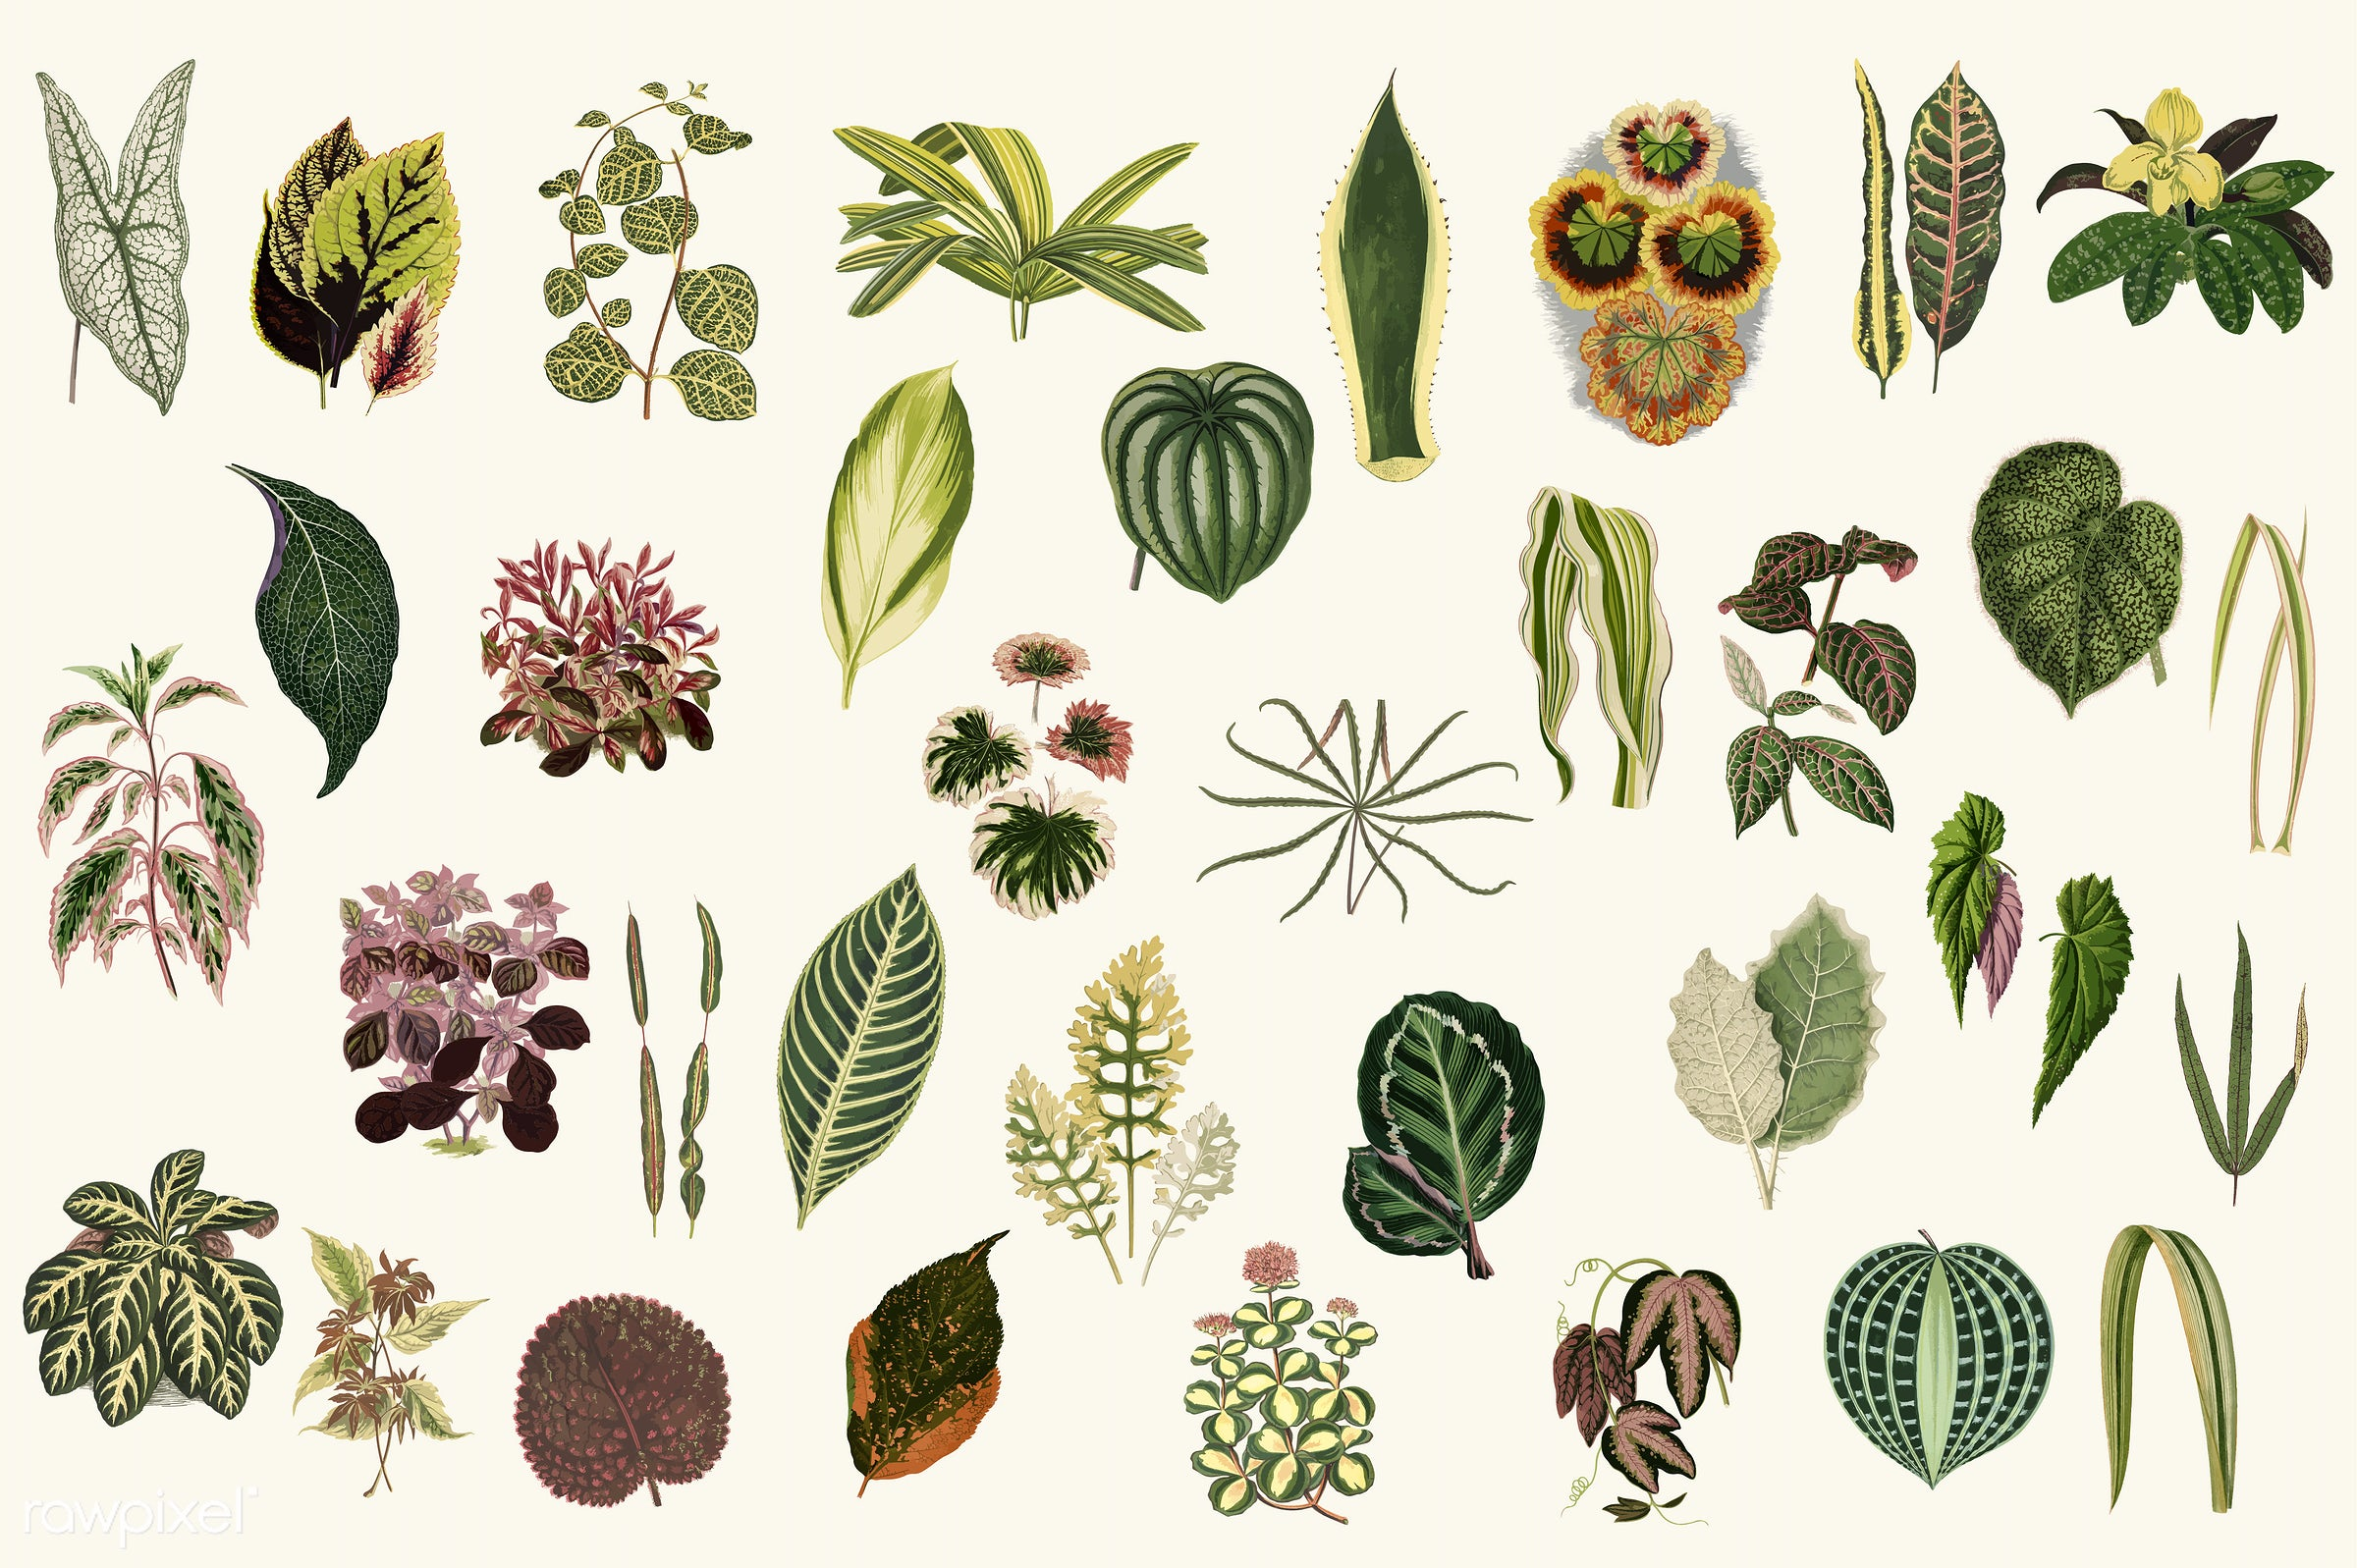 pattern, alternanthera, ancient, antique, aphelandra maculata, background, begonia, collection, coralline fruticose,...